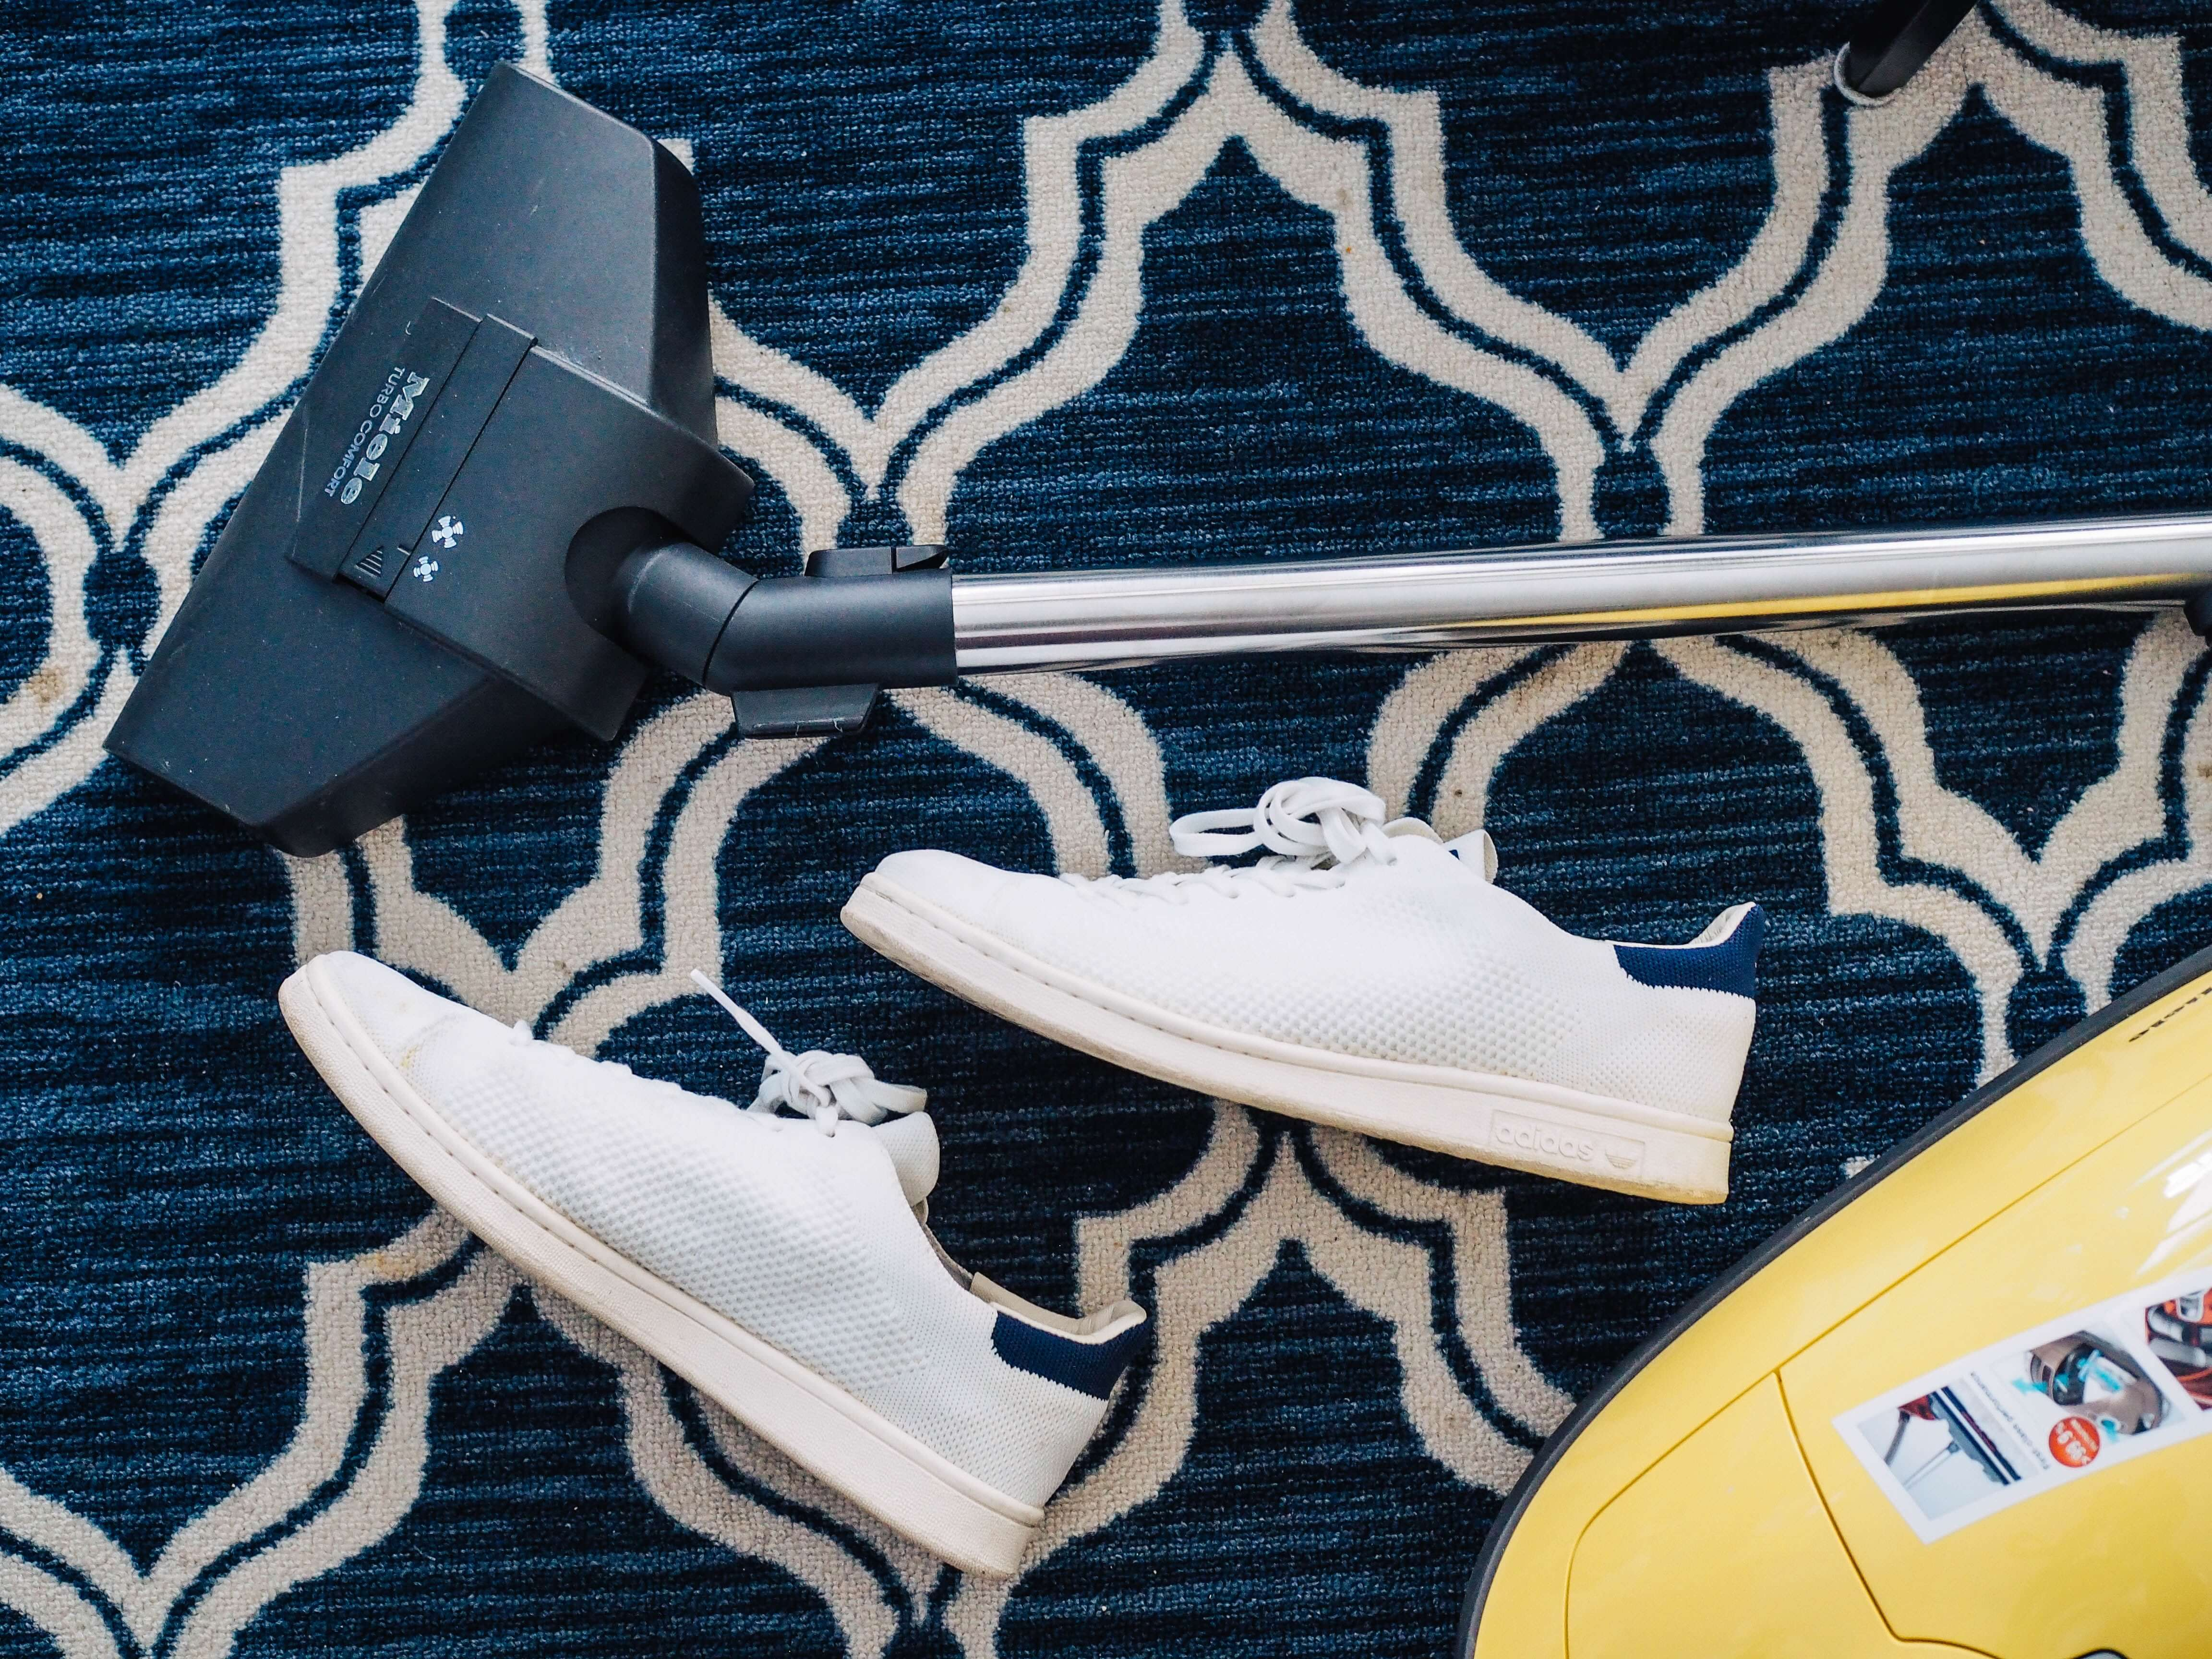 vacuuming cleaner buying guide